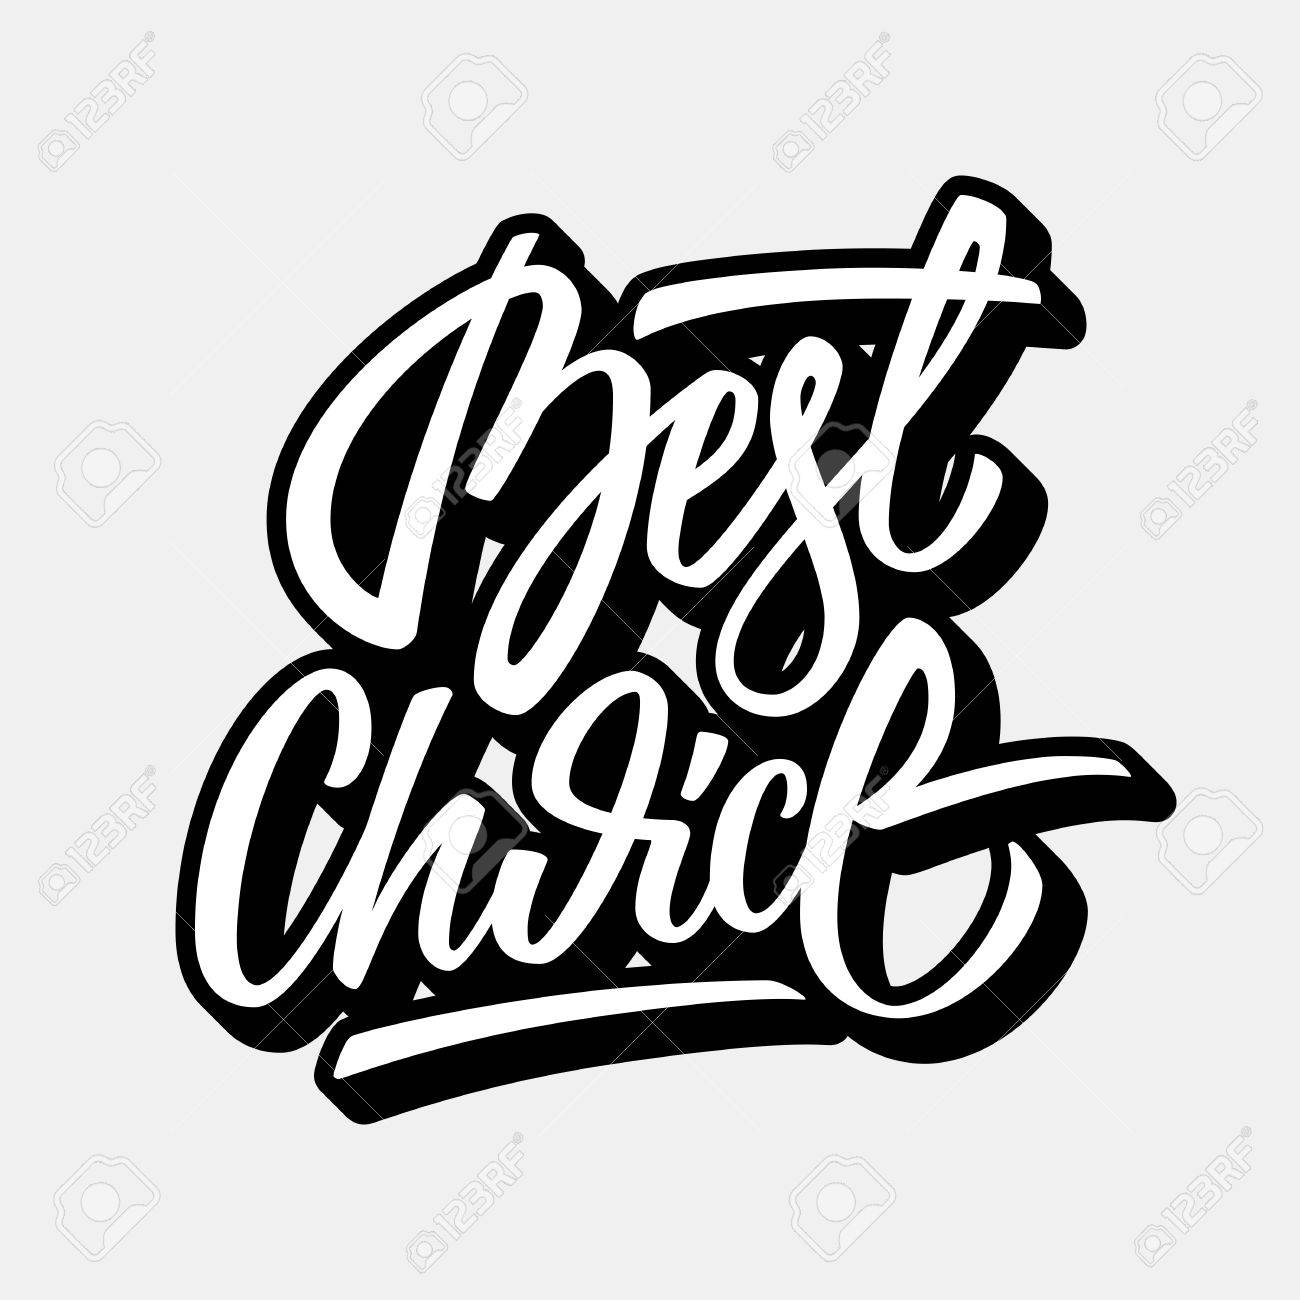 Vector White Best Choice Lettering Graffiti Style Italic Calligraphy With Outline And 3D Block Blended Shade For Design Concepts Labels Prints